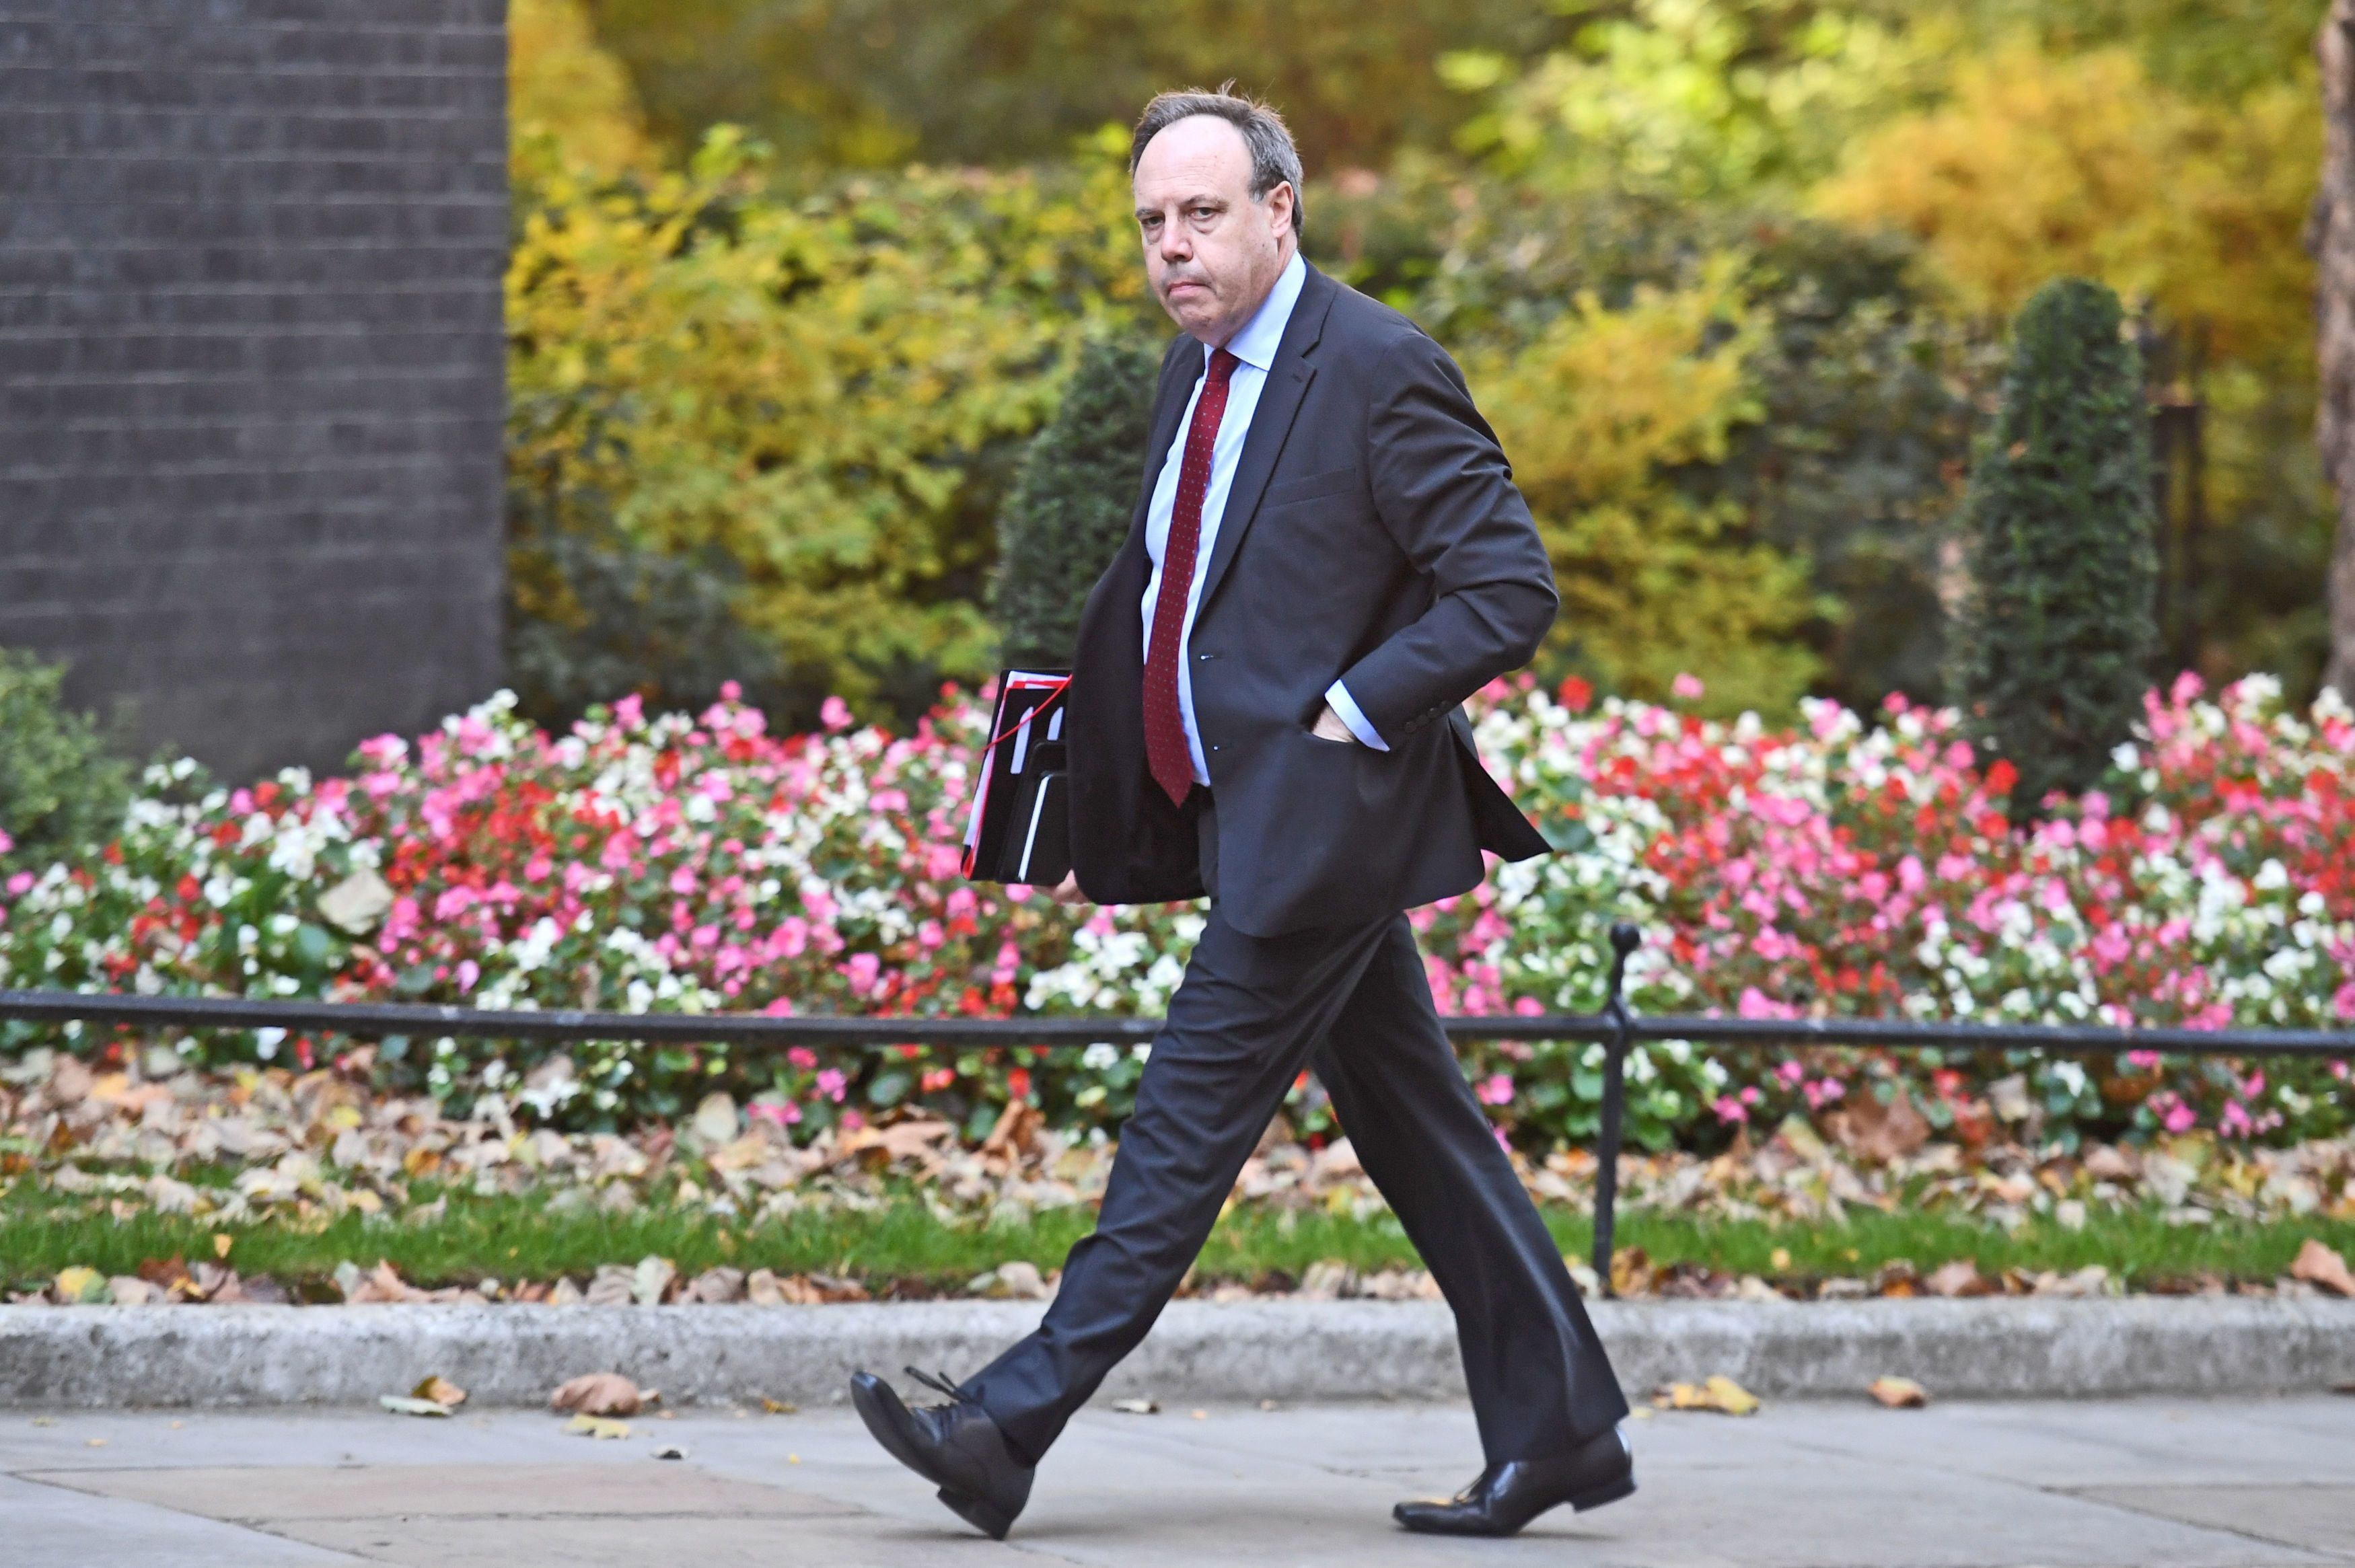 DUP Westminster leader Nigel Dodds held talks with Chief Whip Julian Smith in